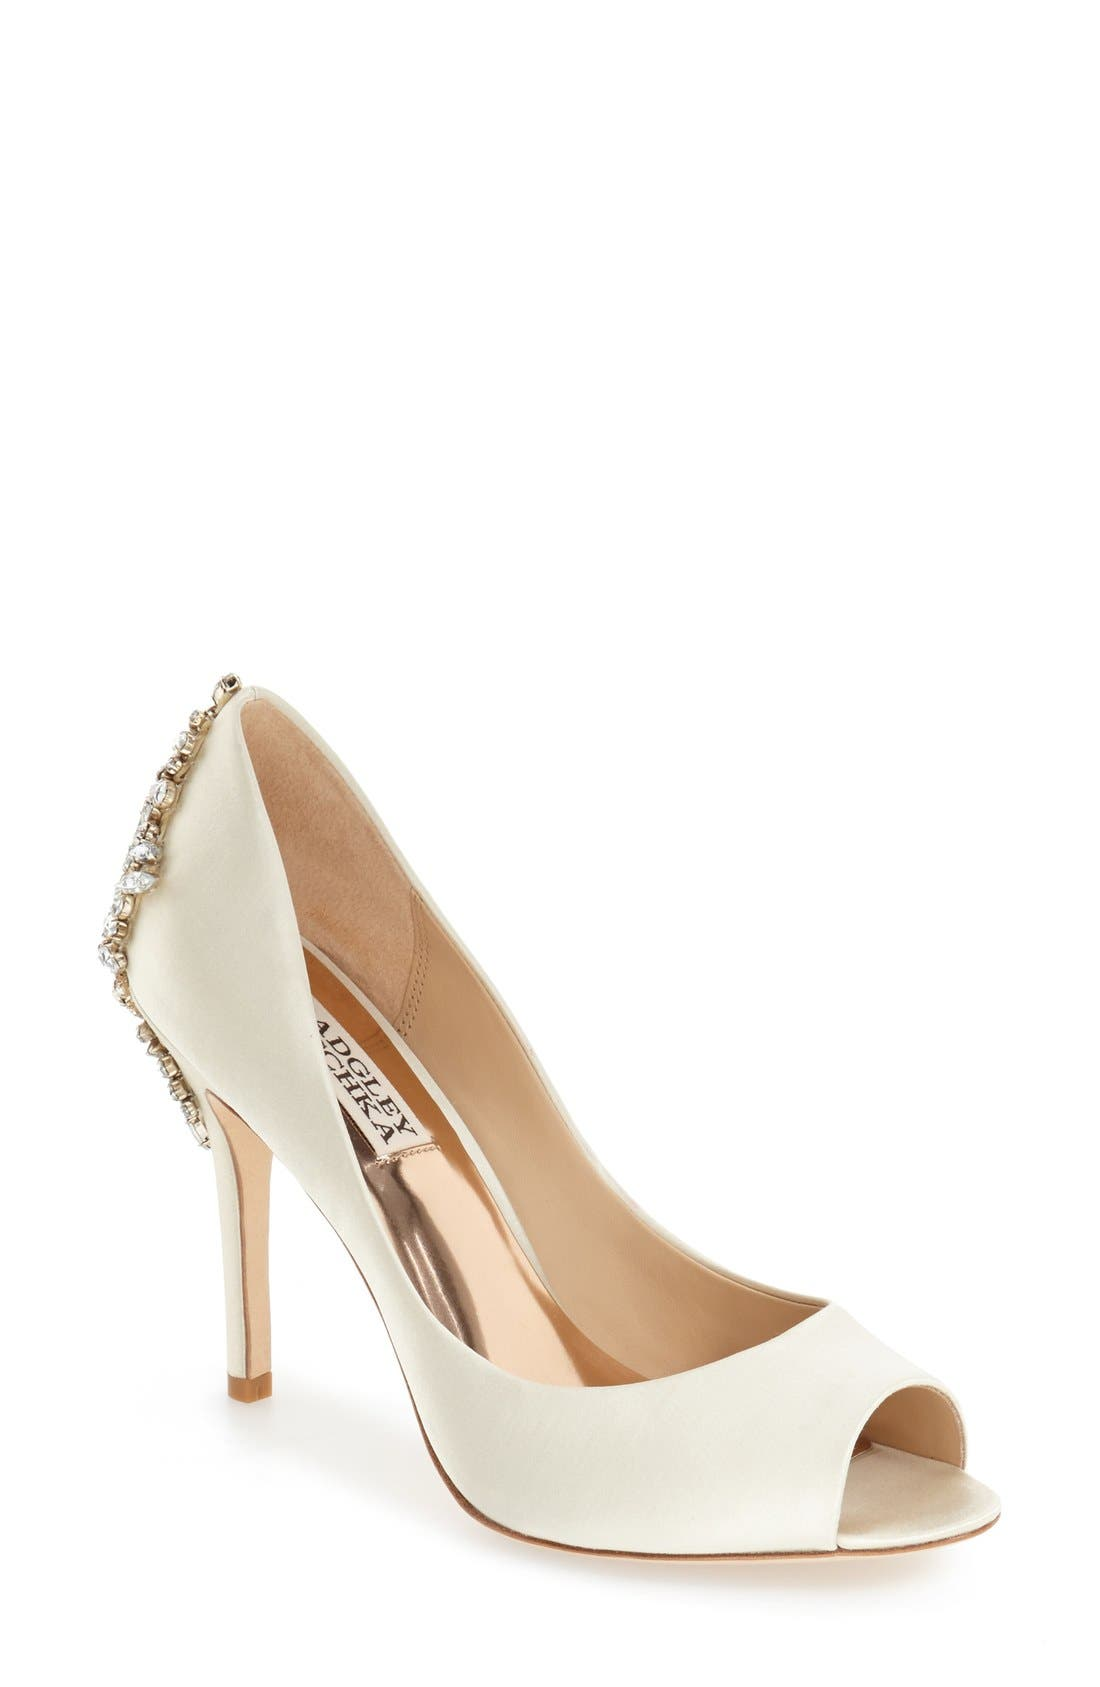 Image of Badgley Mischka Nilla Embellished Back Peep Toe Pump